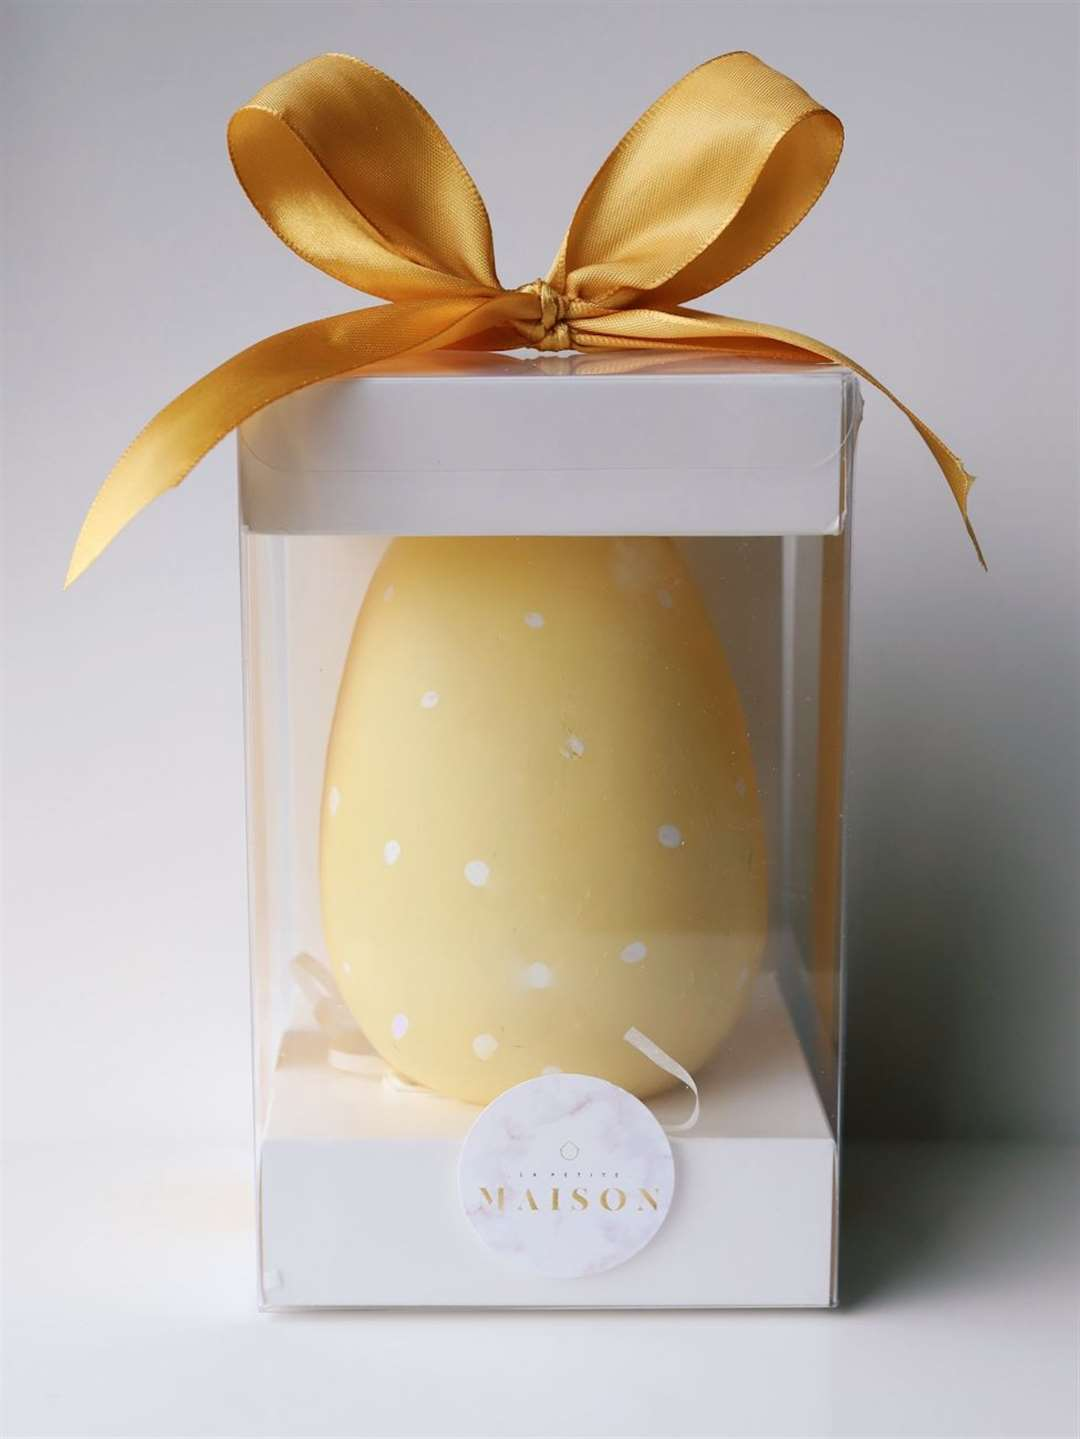 La Petite Maison White Chocolate Easter Egg (45592956)